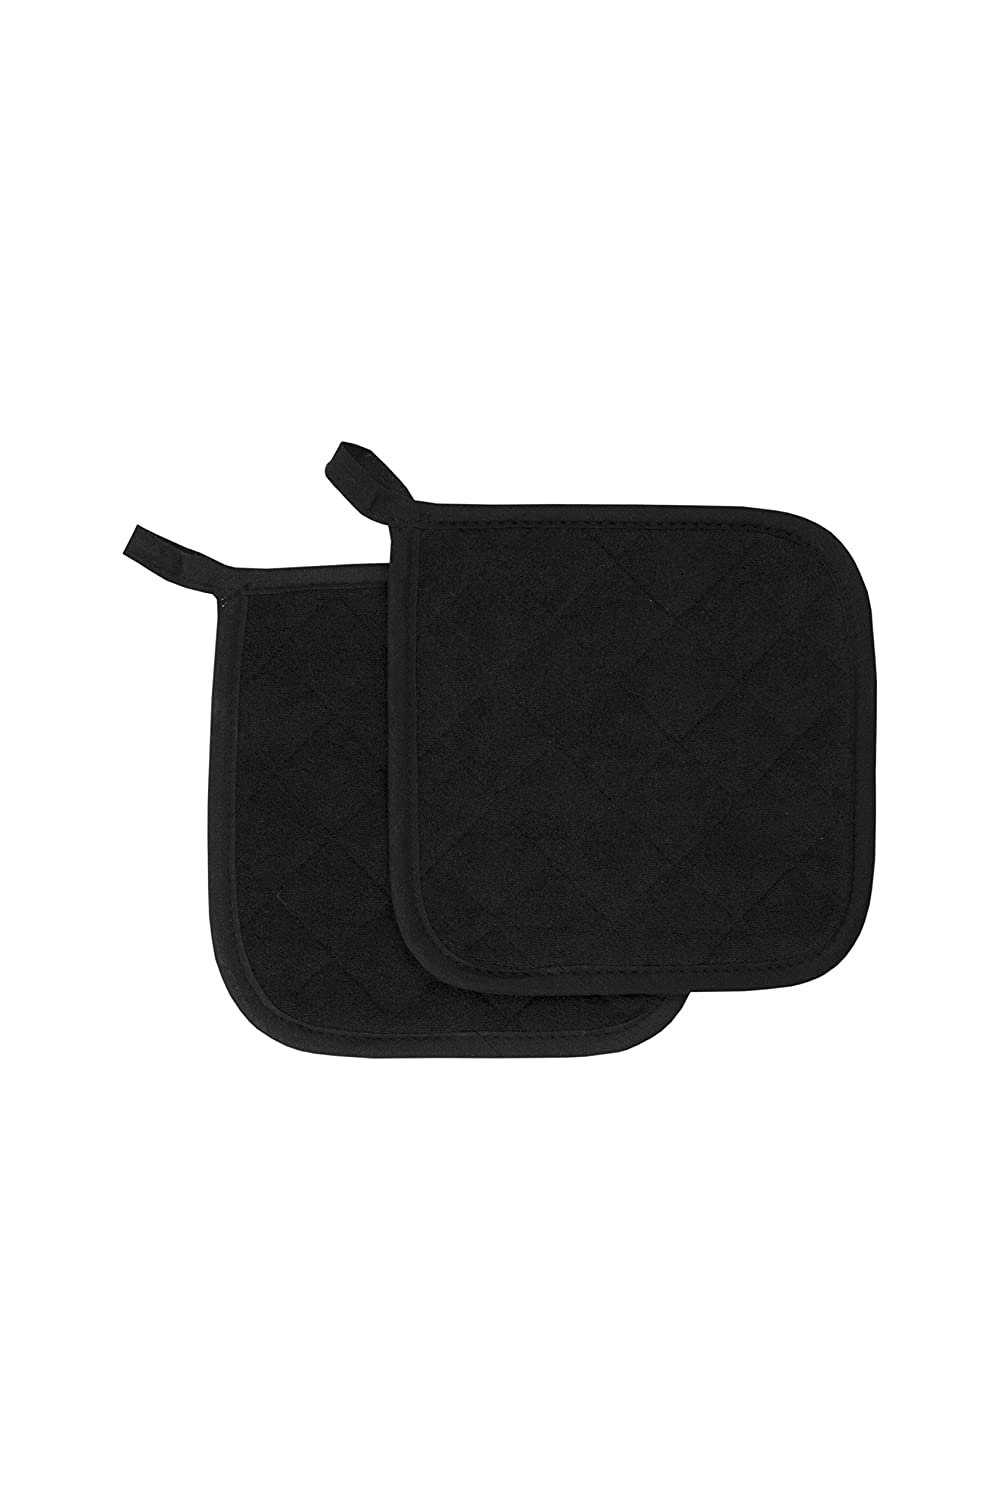 RITZ Food Service CLTPH8BE-1 Cotton Terry 450 Degree Pot Holders, 8-Inch, Black/Brown